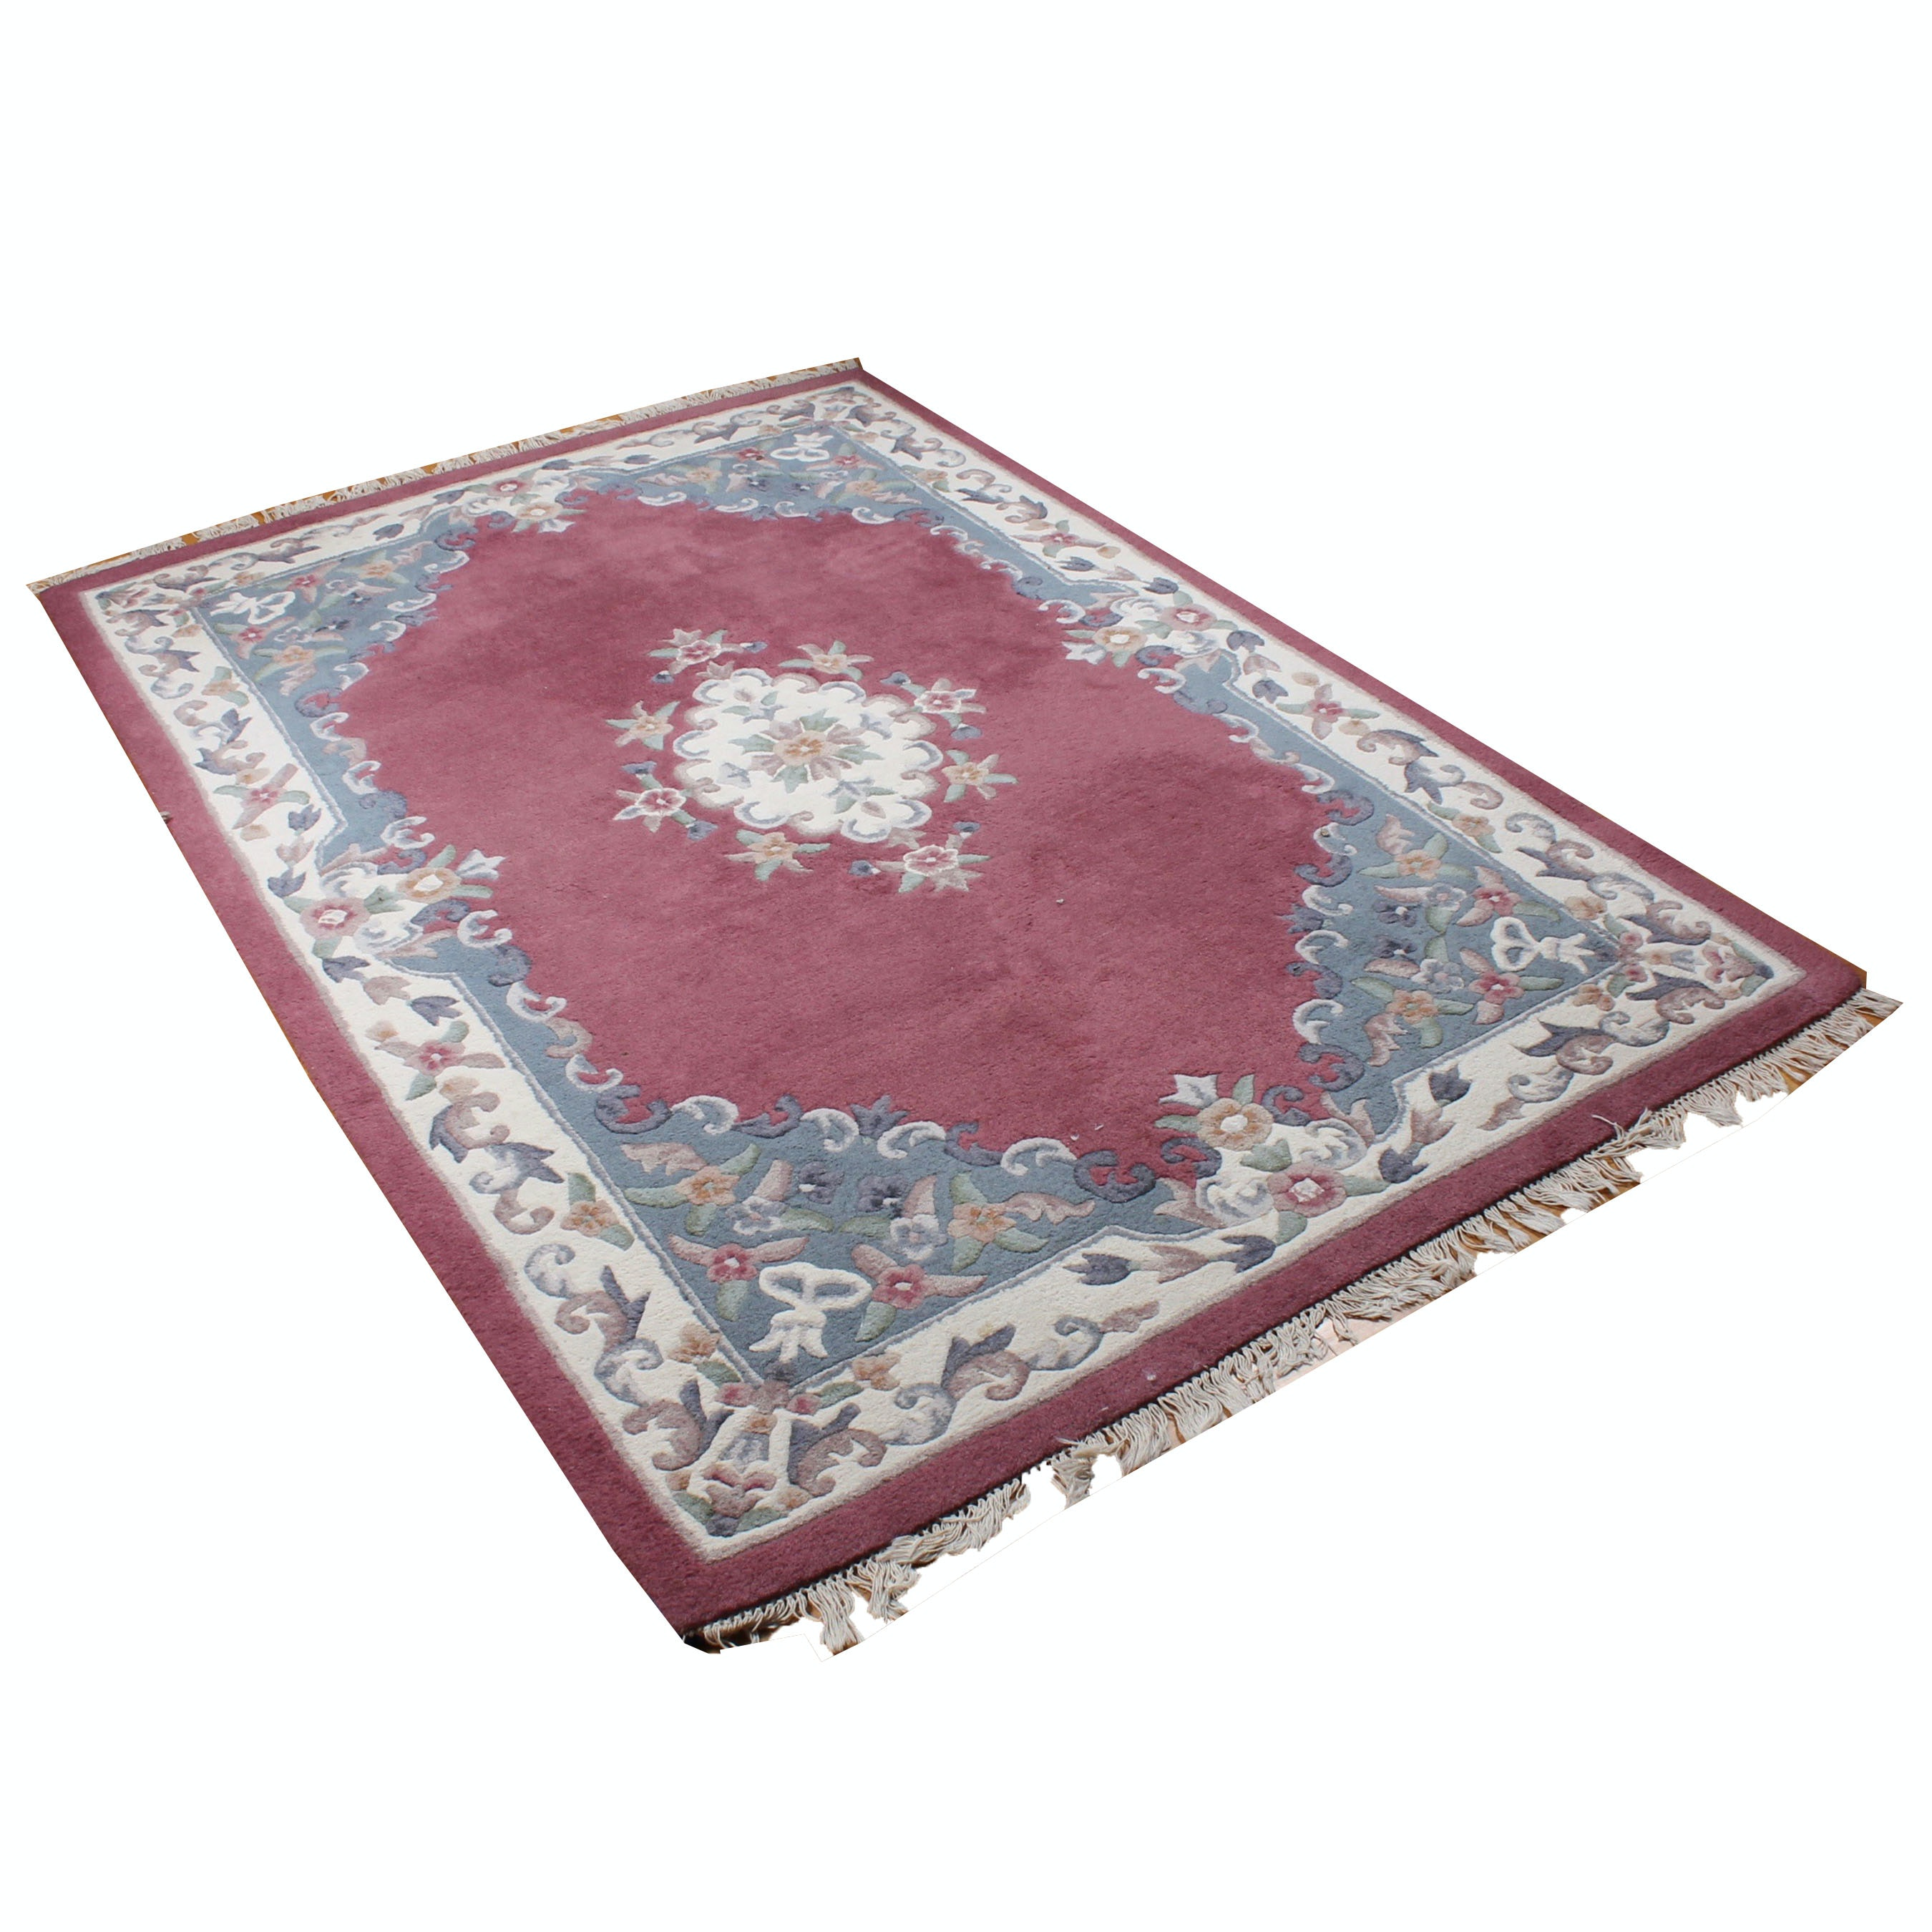 Chinese Hand-Tufted Area Rug